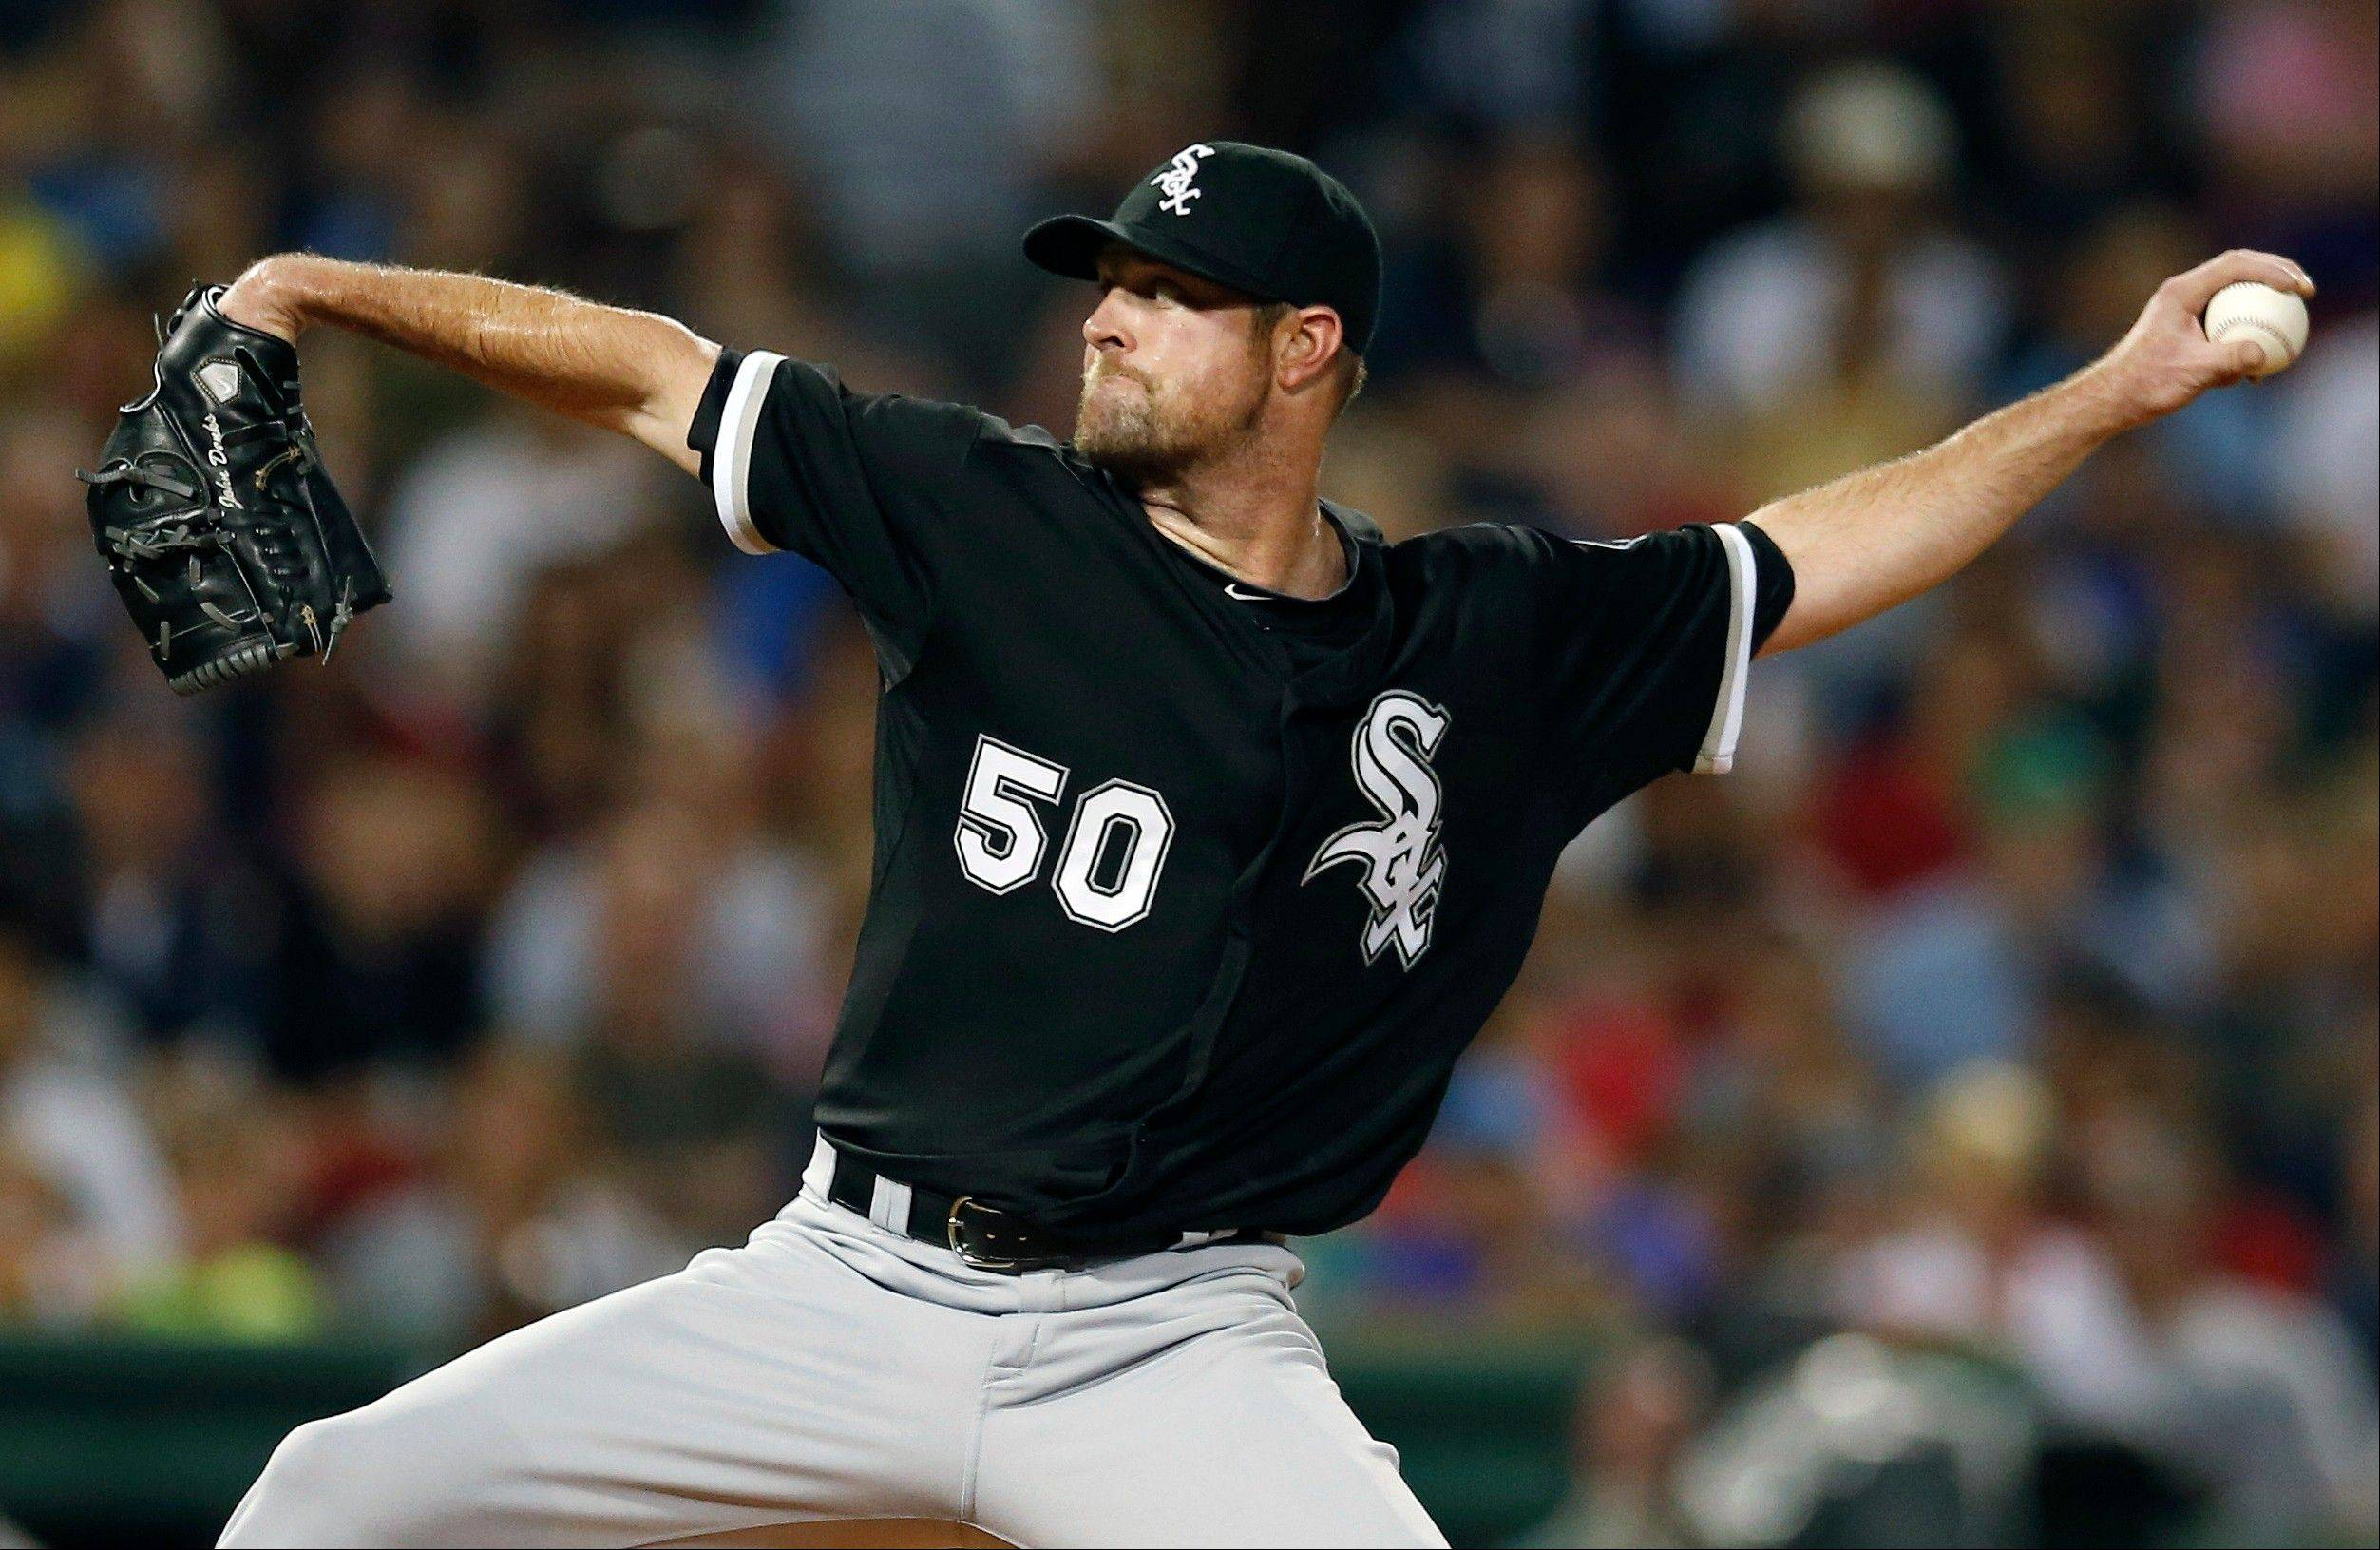 Chicago White Sox's John Danks pitches in the first inning against the Boston Red Sox in Boston, Saturday.